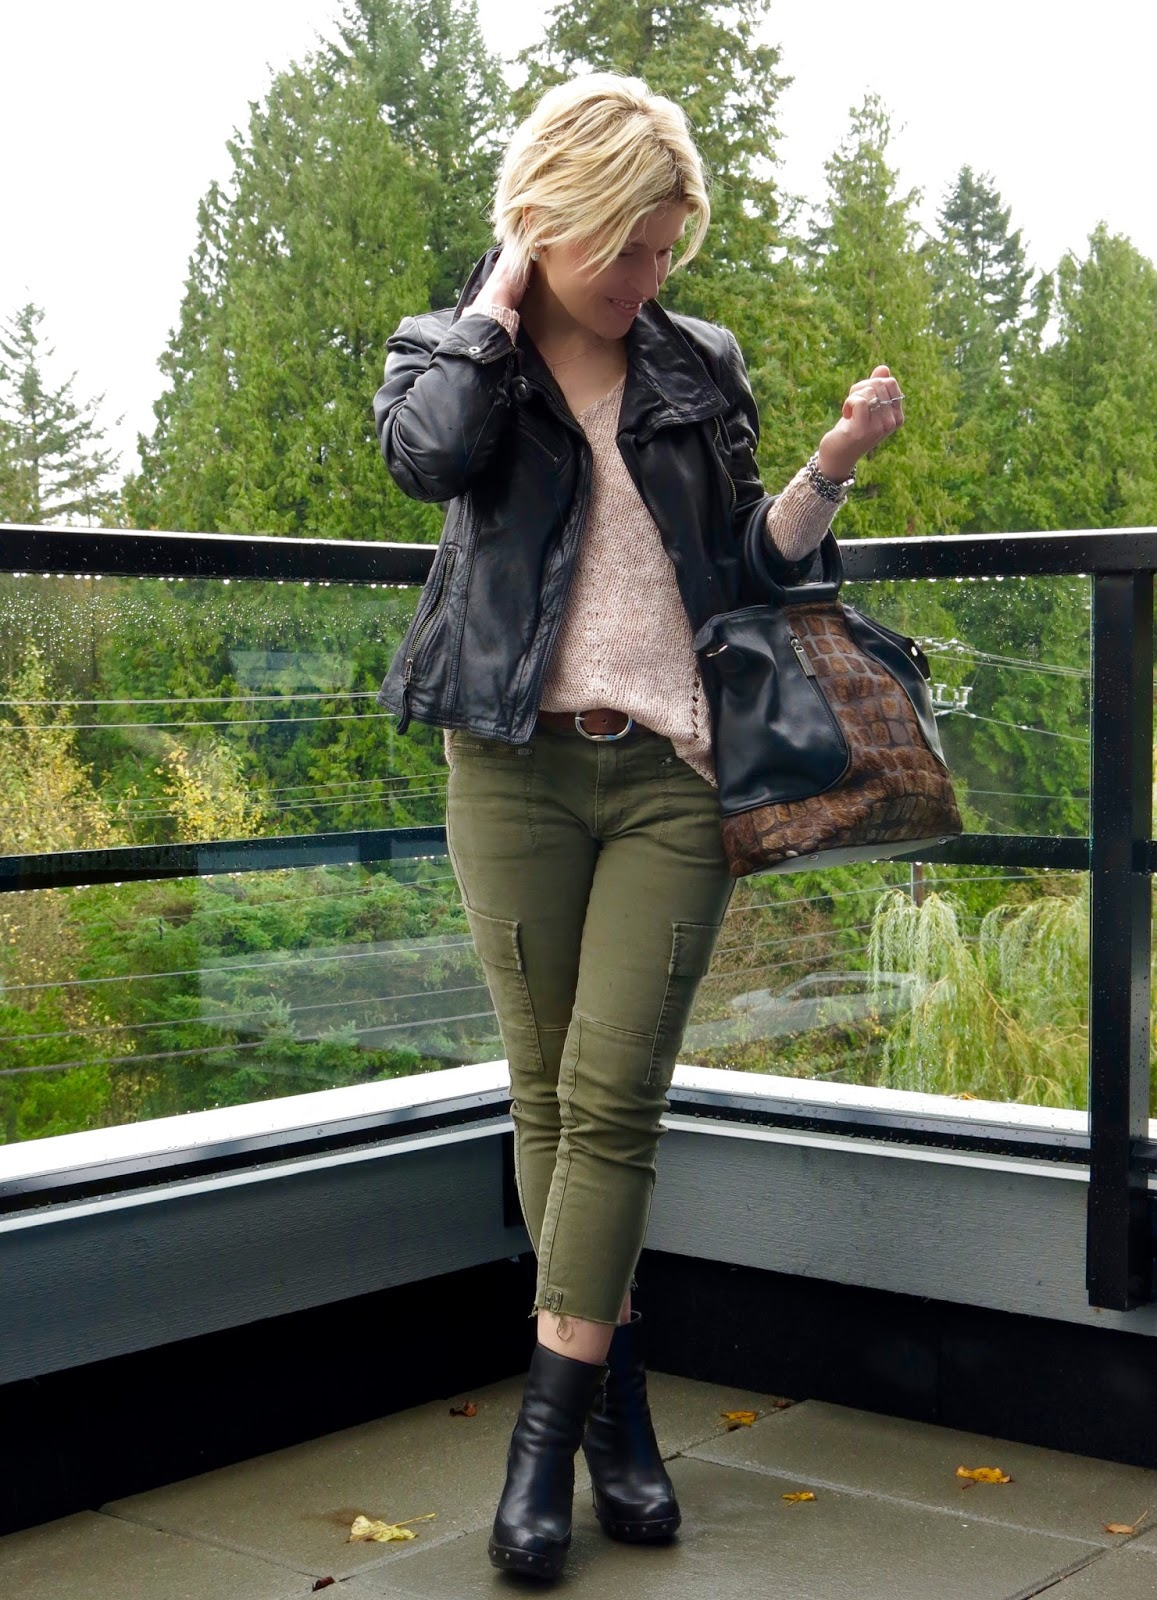 styling skinny cargo pants with a drapey sweater, platform booties, and a moto jacket